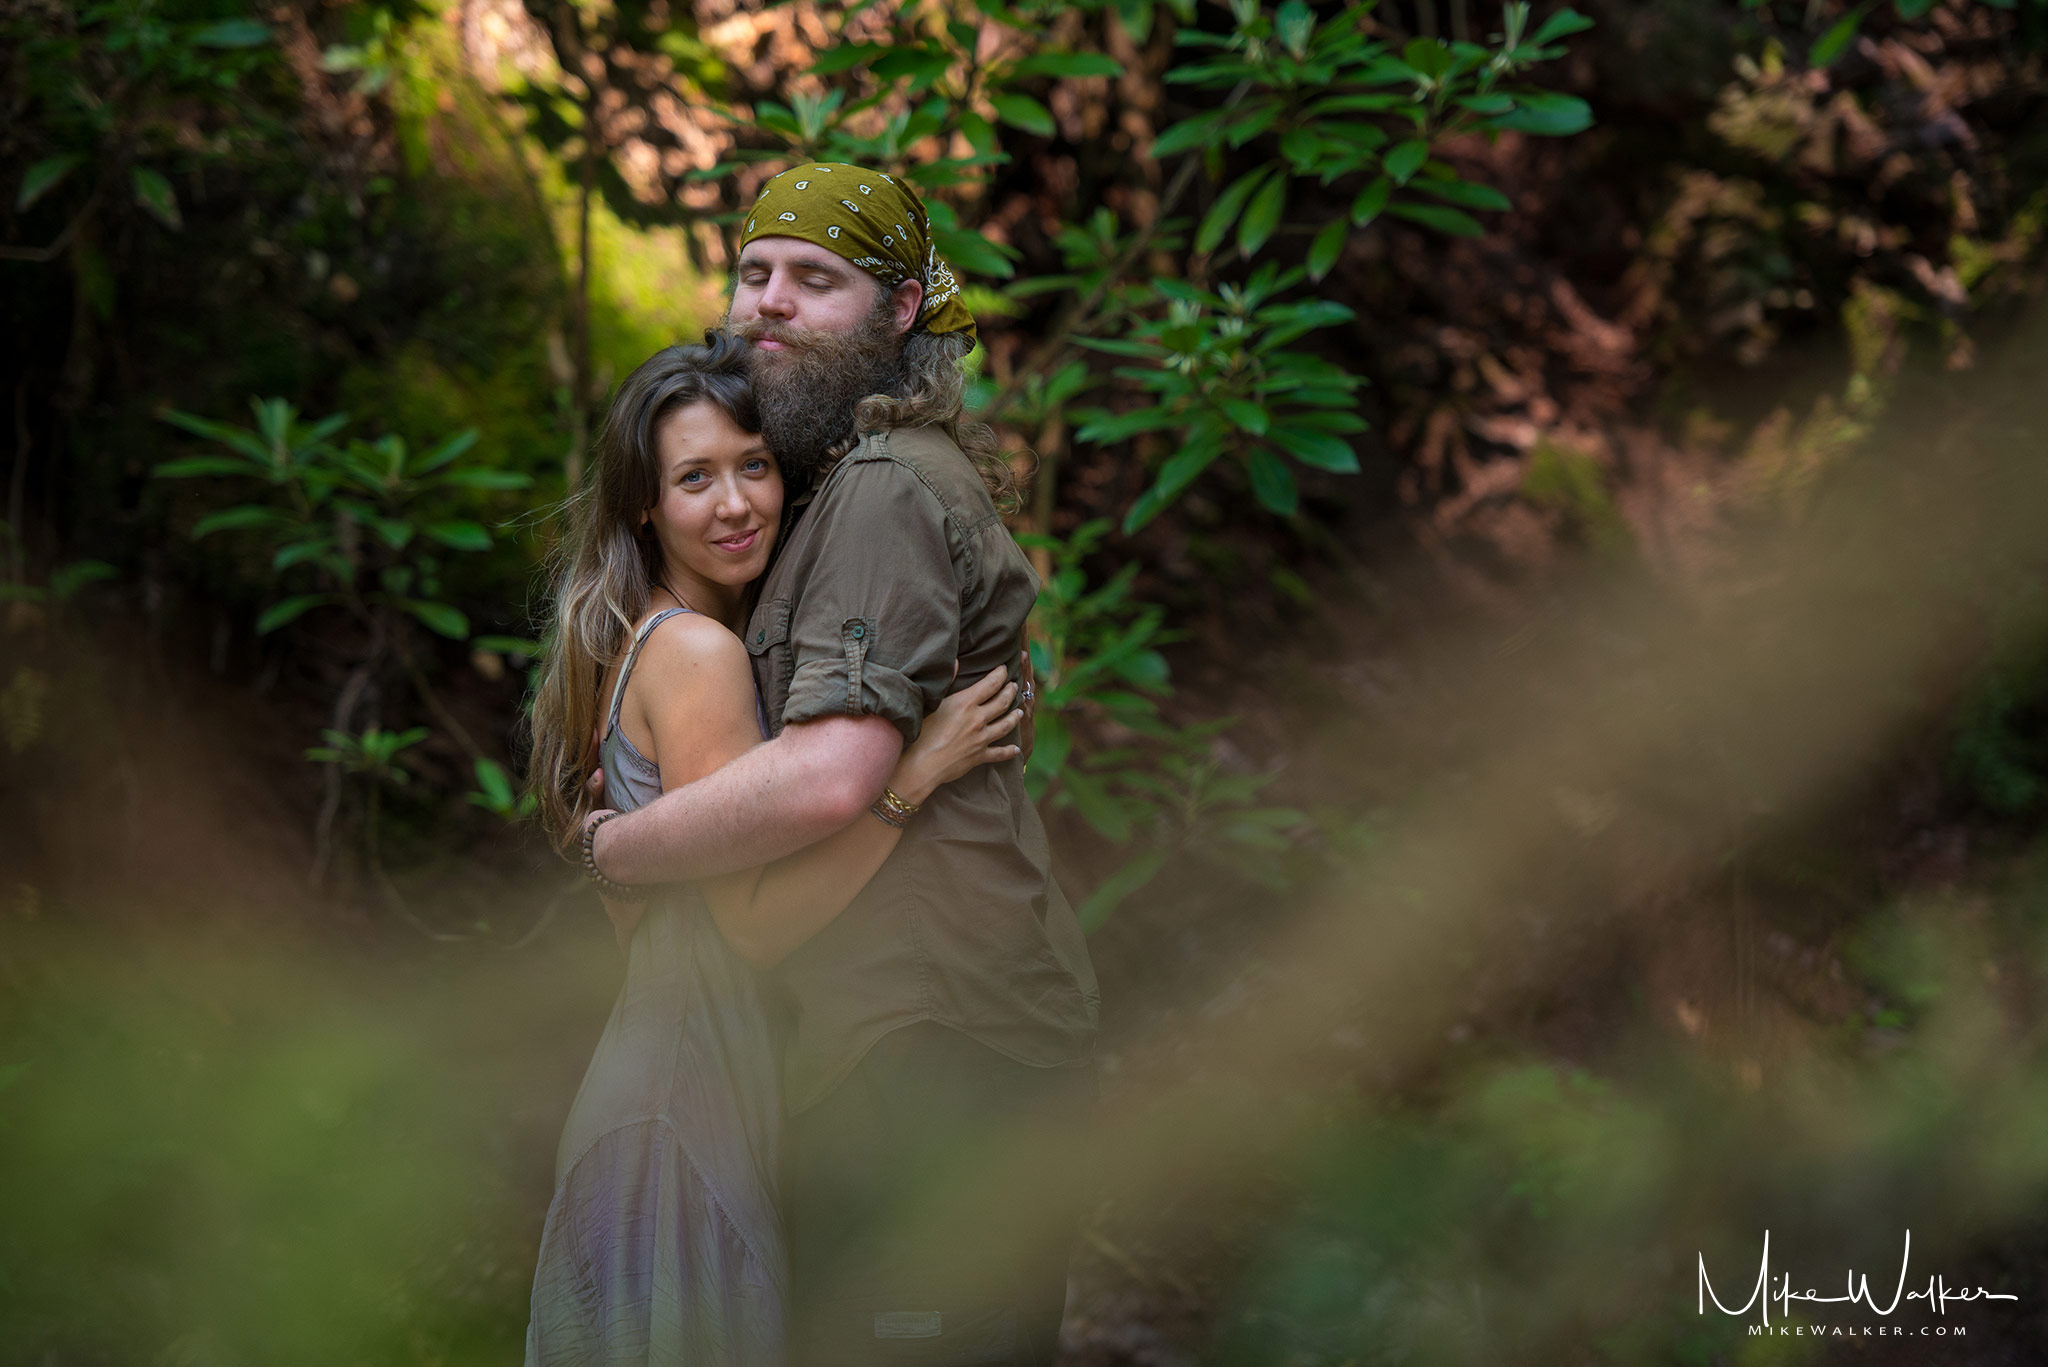 Engagement photos in the woods of NJ. Photography by Mike Walker.